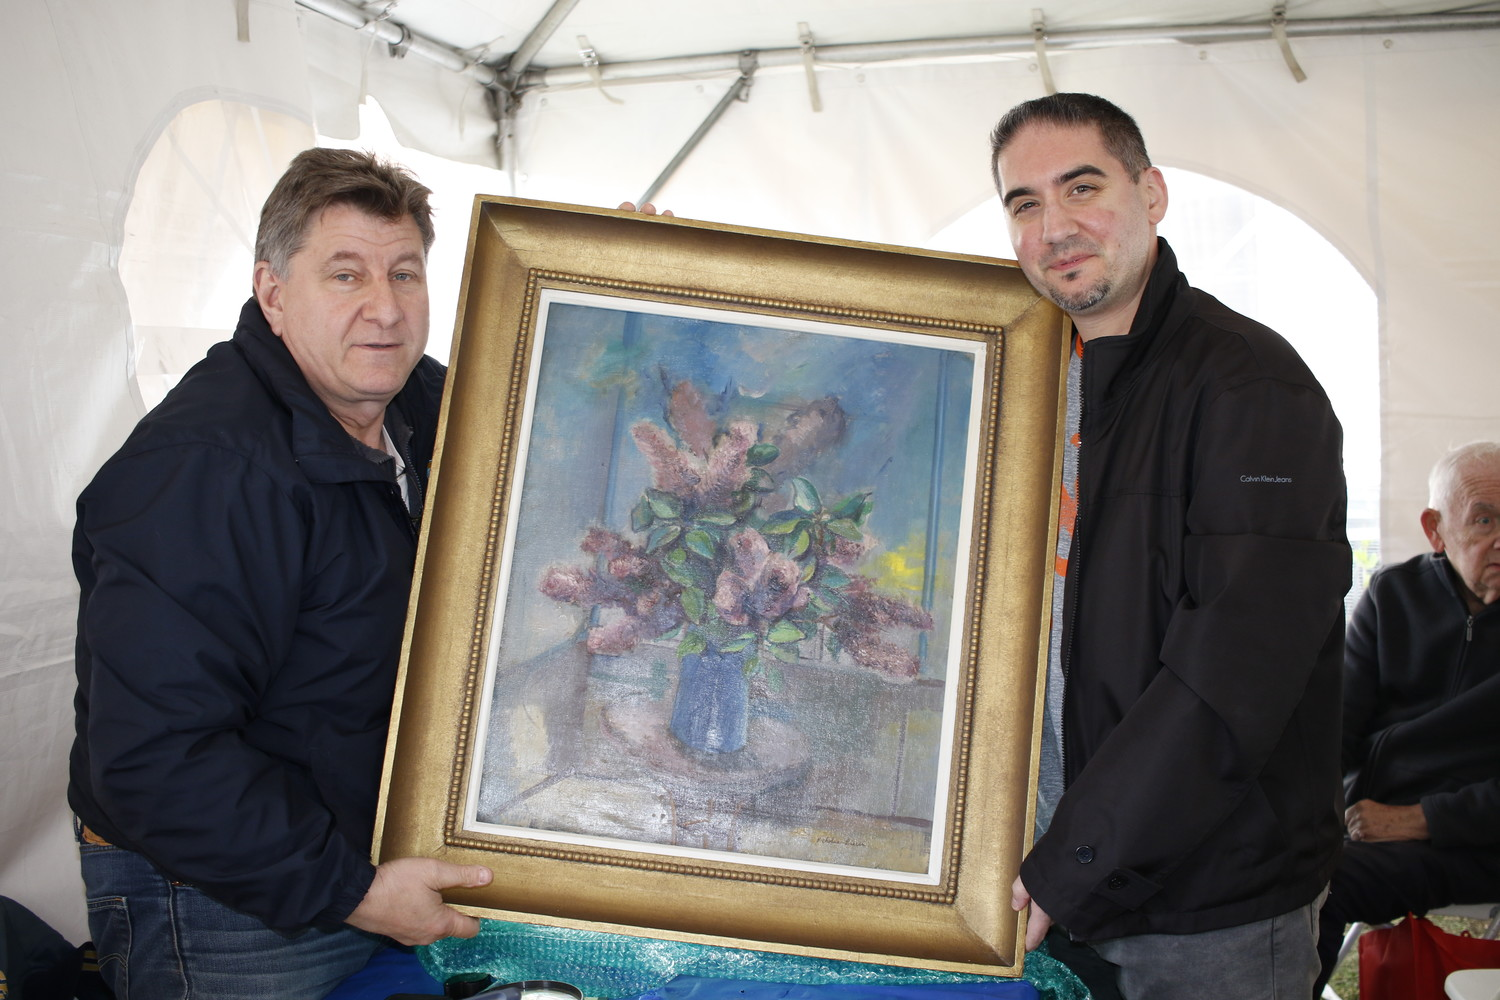 Richard Vardaro, right, showed off a painting by Nicholas Luisi, appraised by Philip Weiss, left, at $500 to $1,000. The painter was Vardaro's grandmother's cousin.